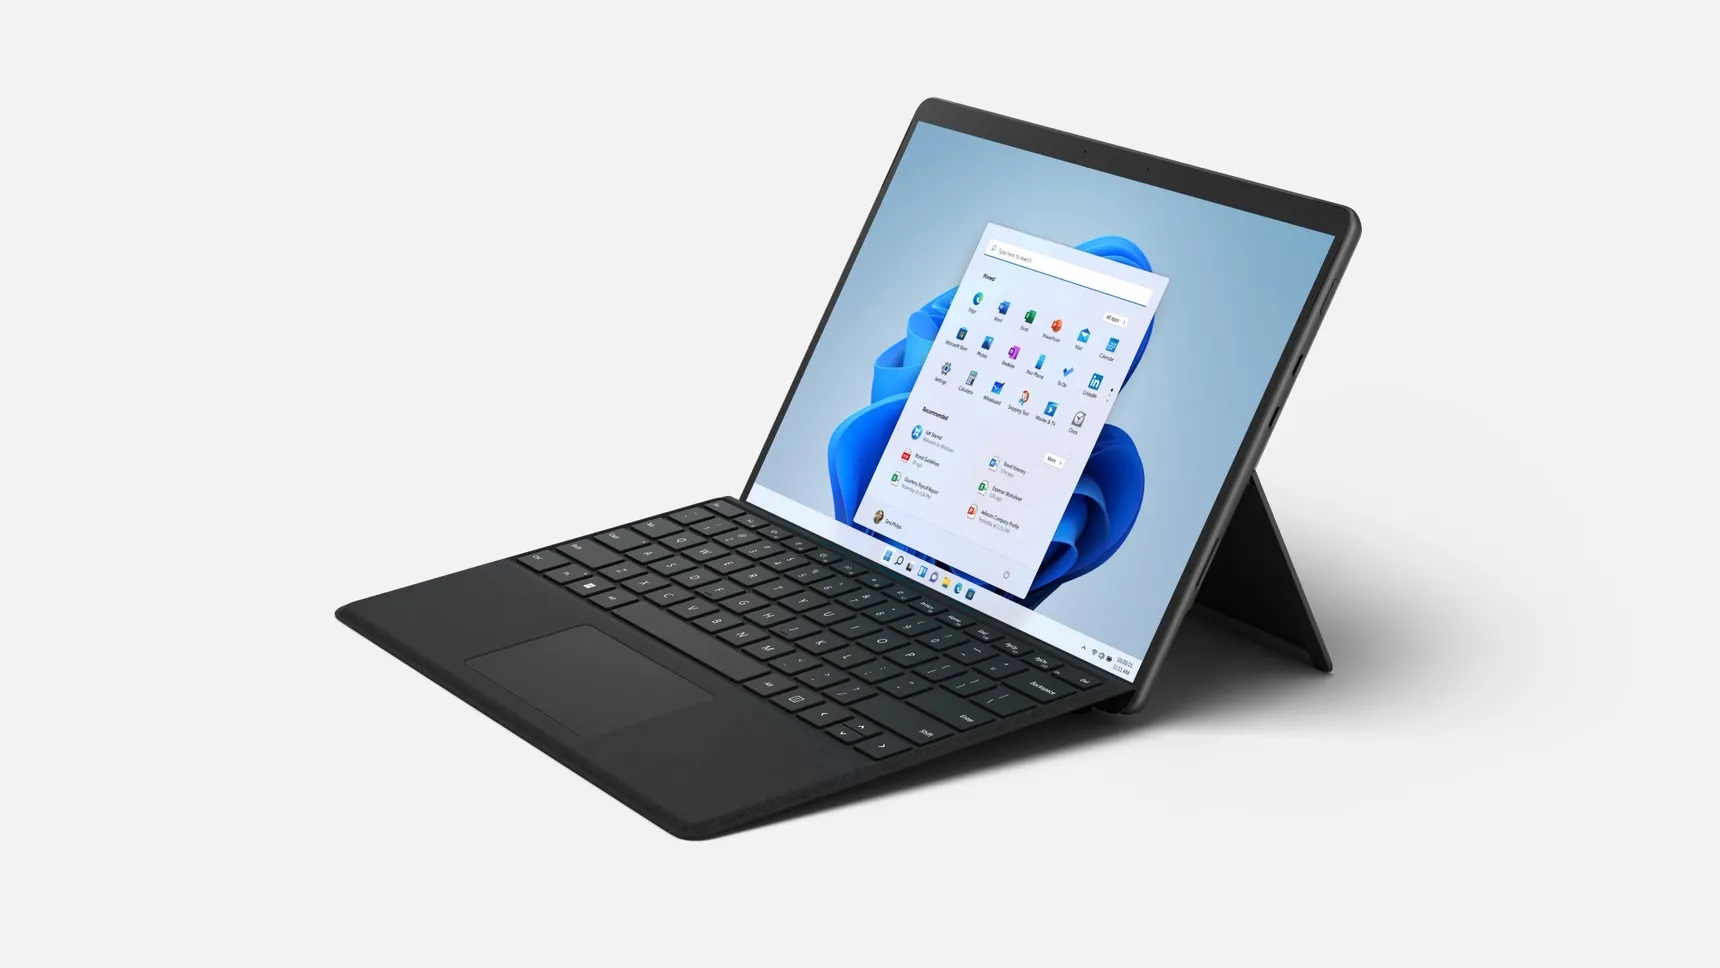 Surface_Pro_8_with_Type_Cover_under_embargo_until_September_22.jpg.jpg